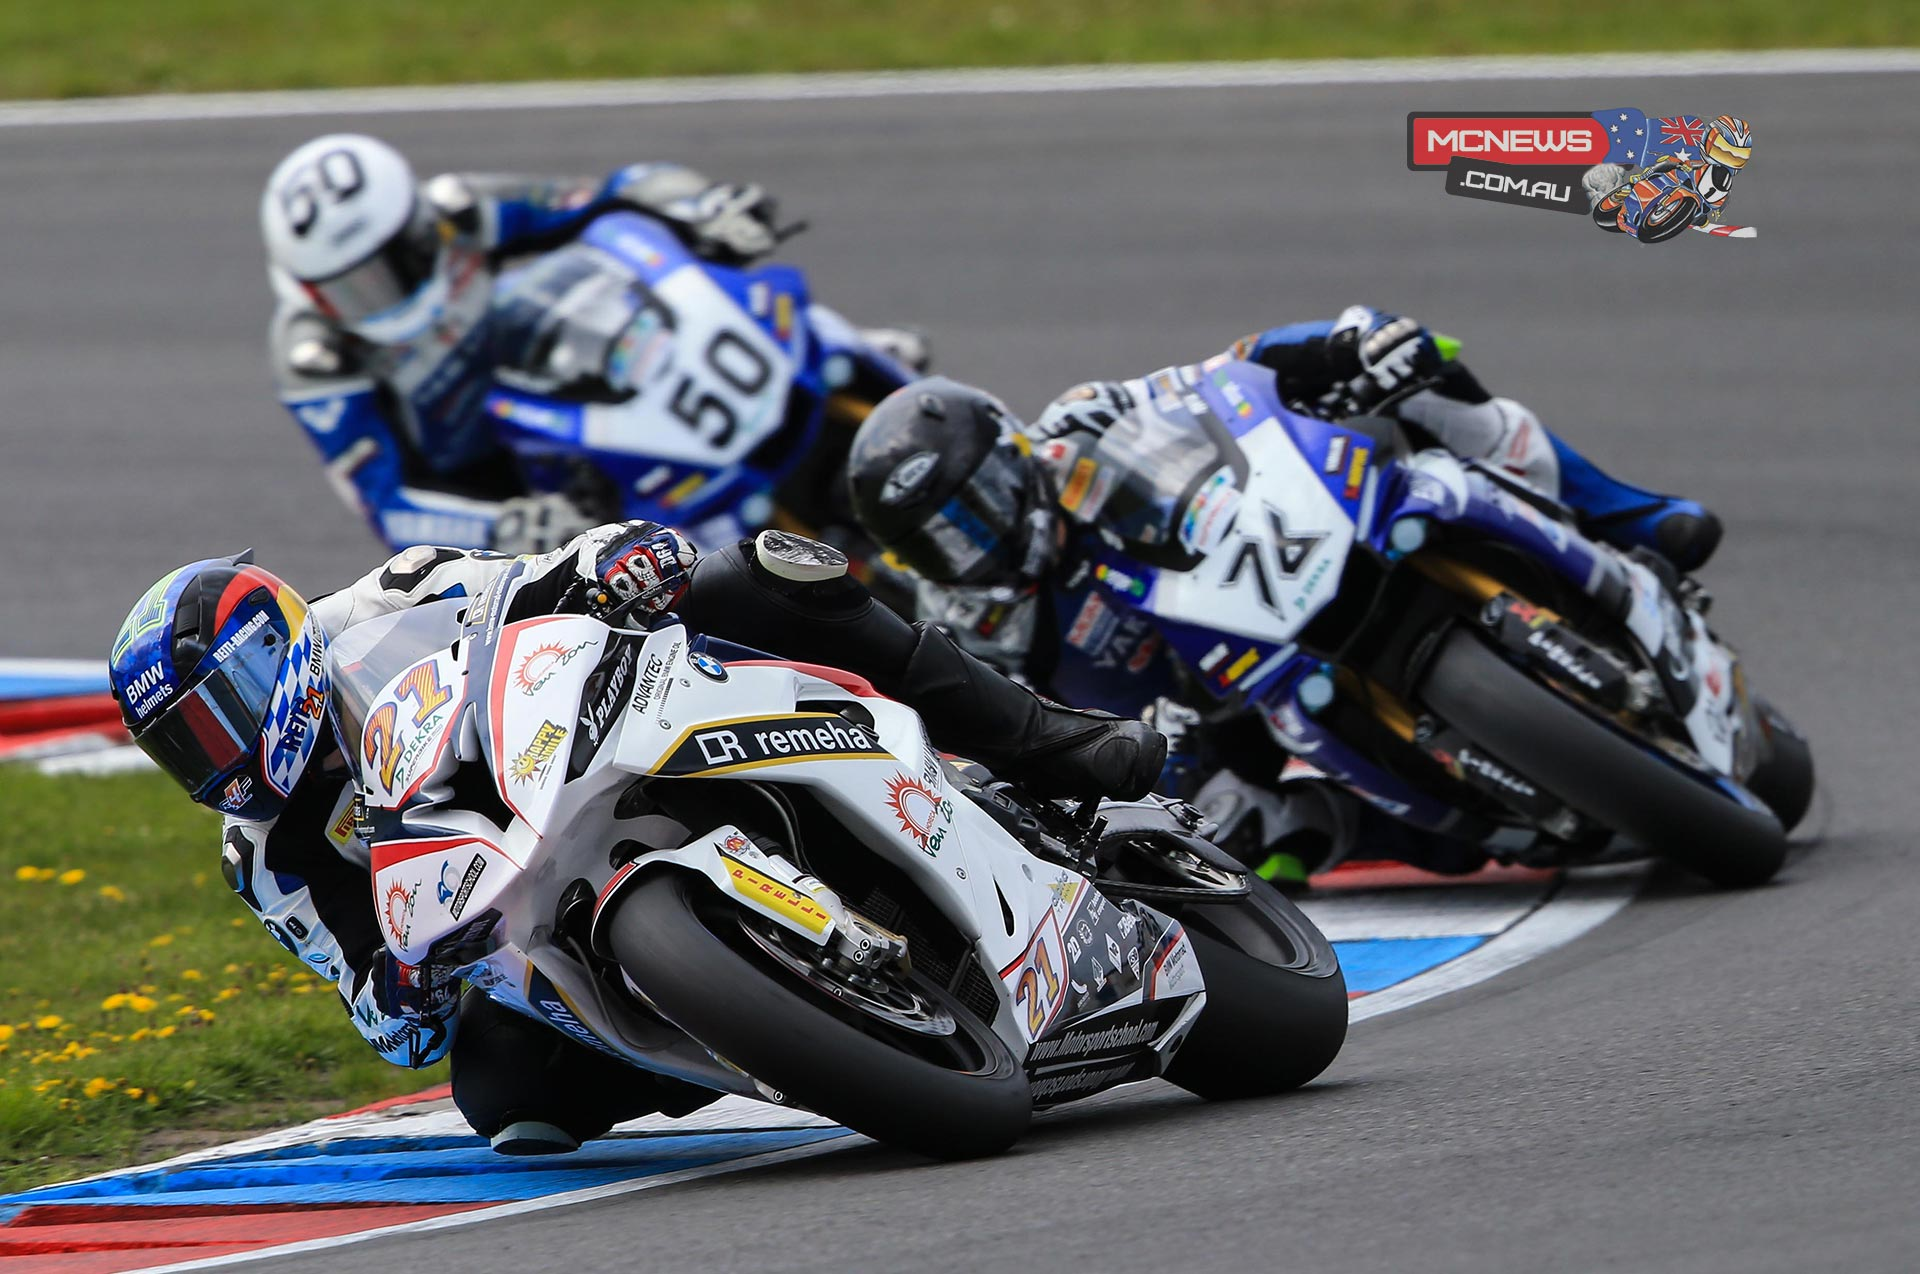 Markus Reiterberger leads Max Neukirchner and Damian Cudlin at 2015 IDM SBK Season opener at Lausitzring